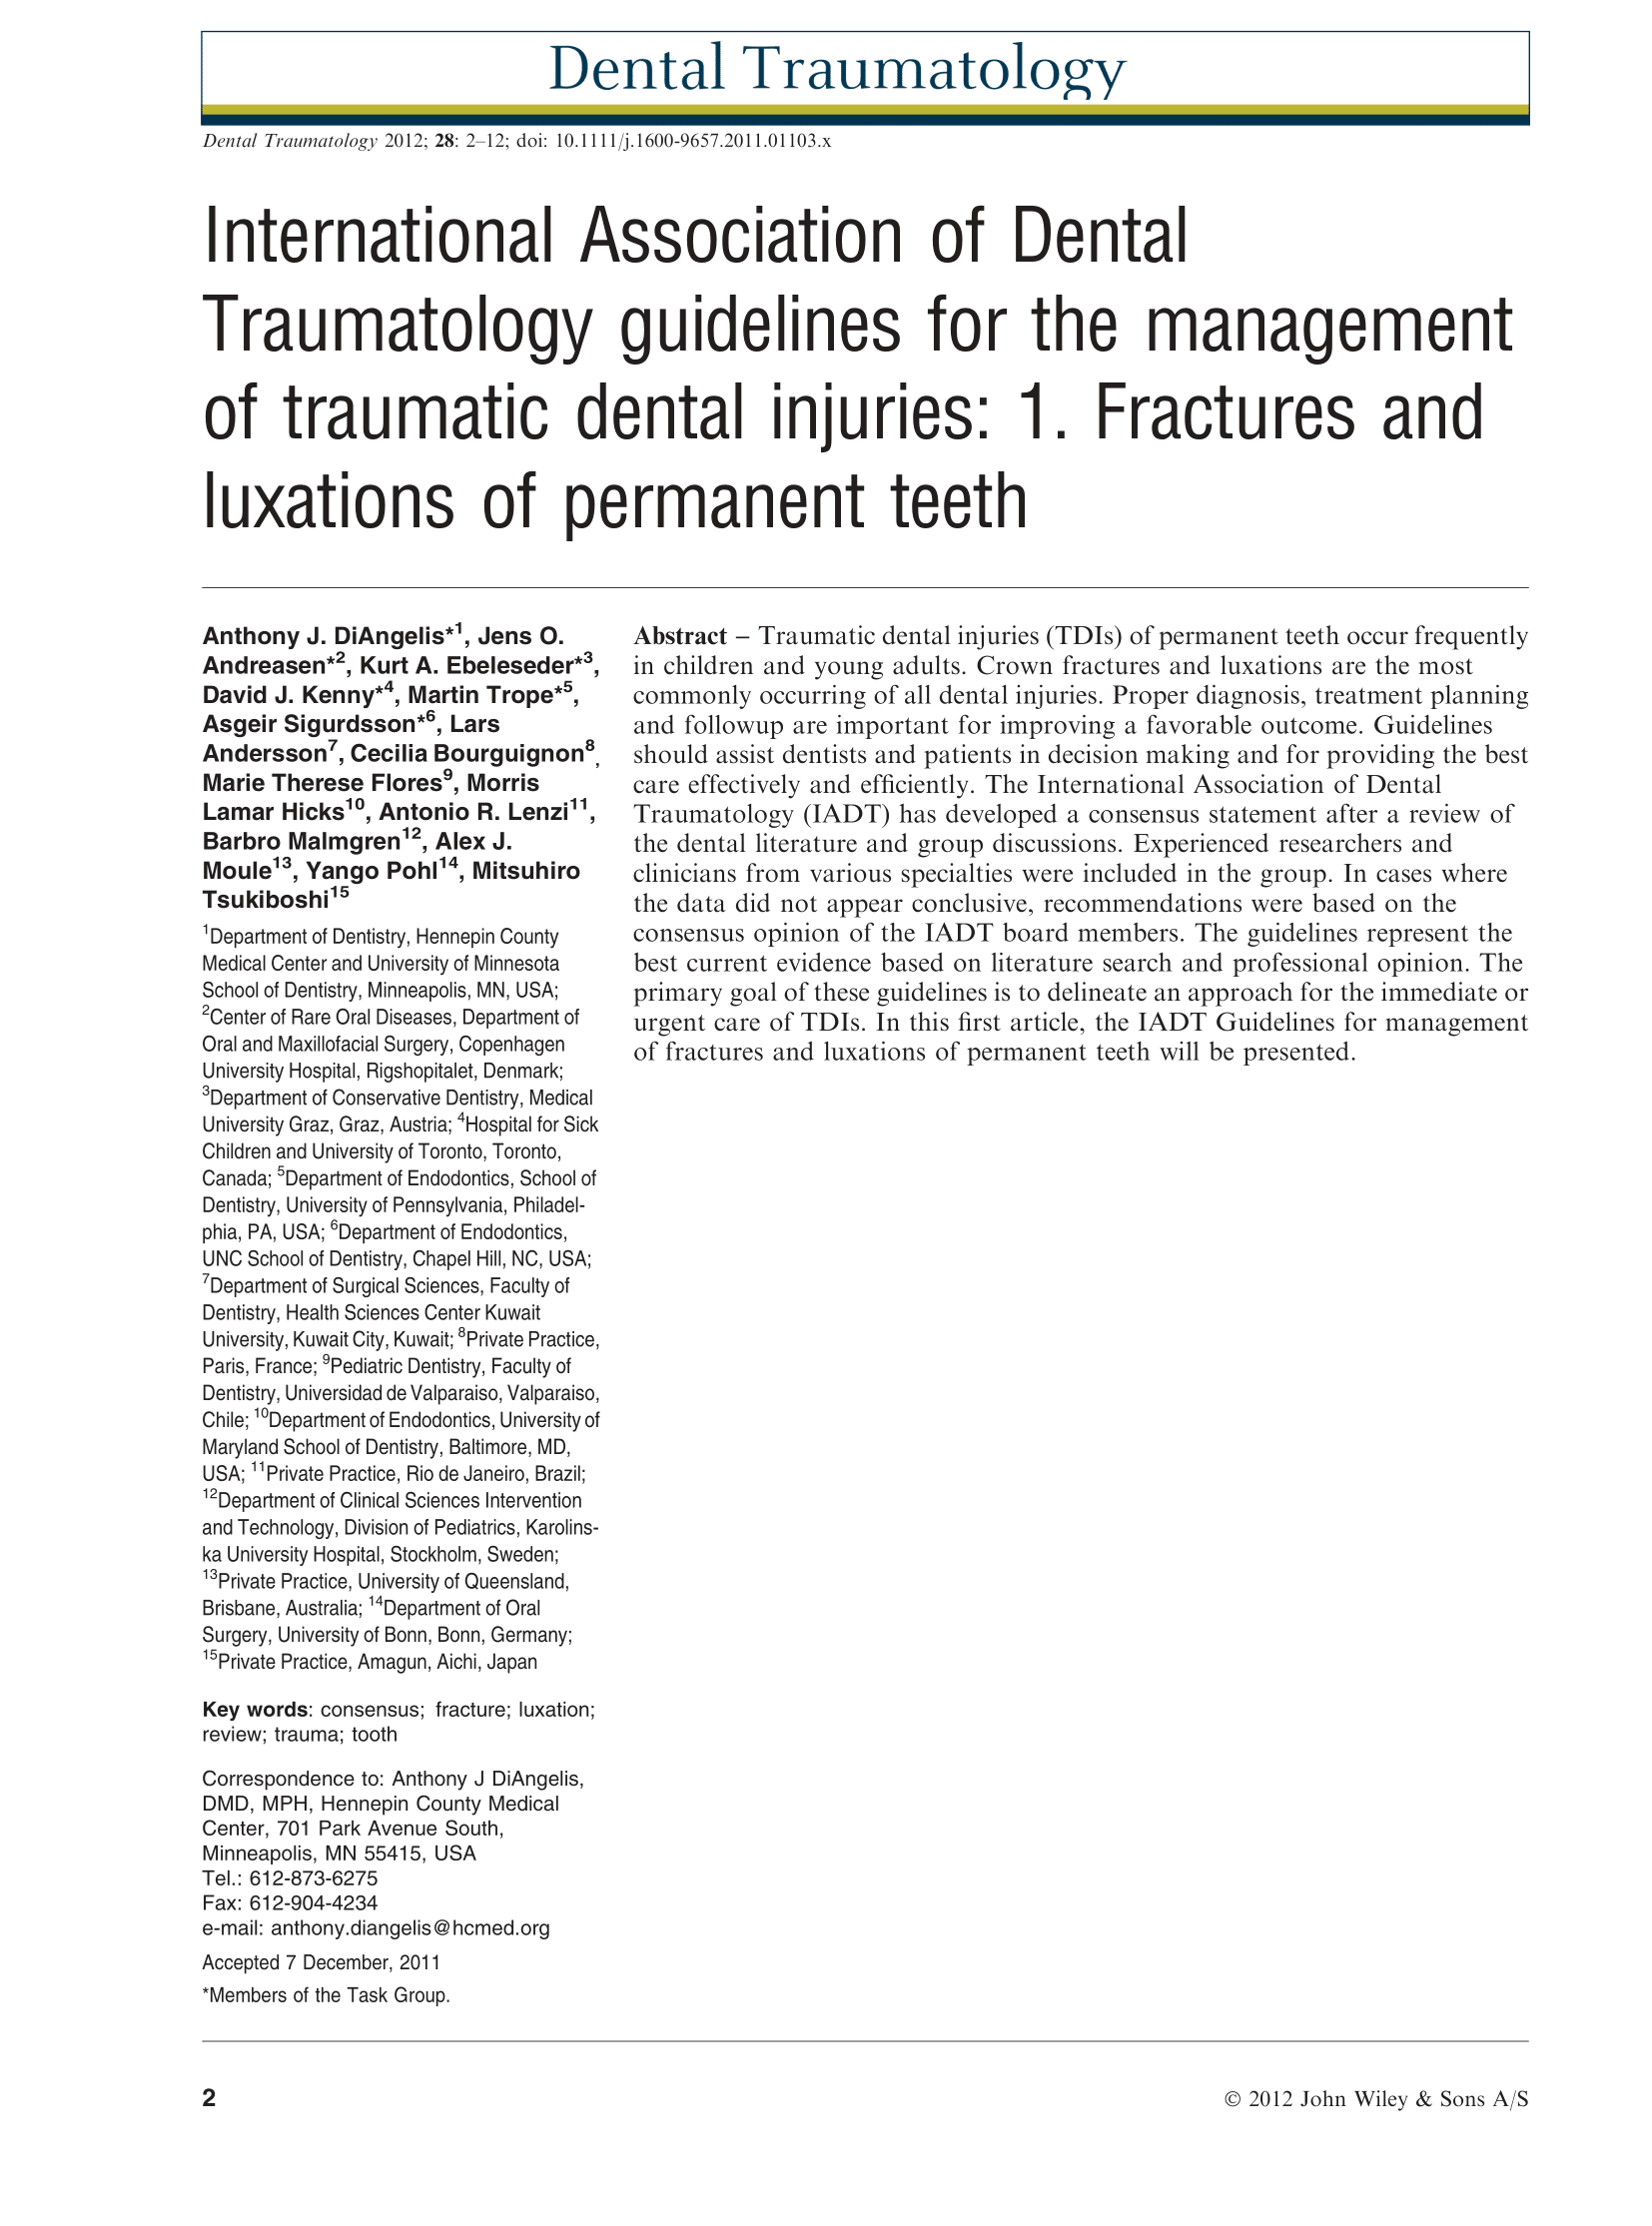 International Association of Dental Traumatology guidelines for the Management of Traumatic Dental Injuries: 1. Fractures and Luxations of Permanent Teeth.